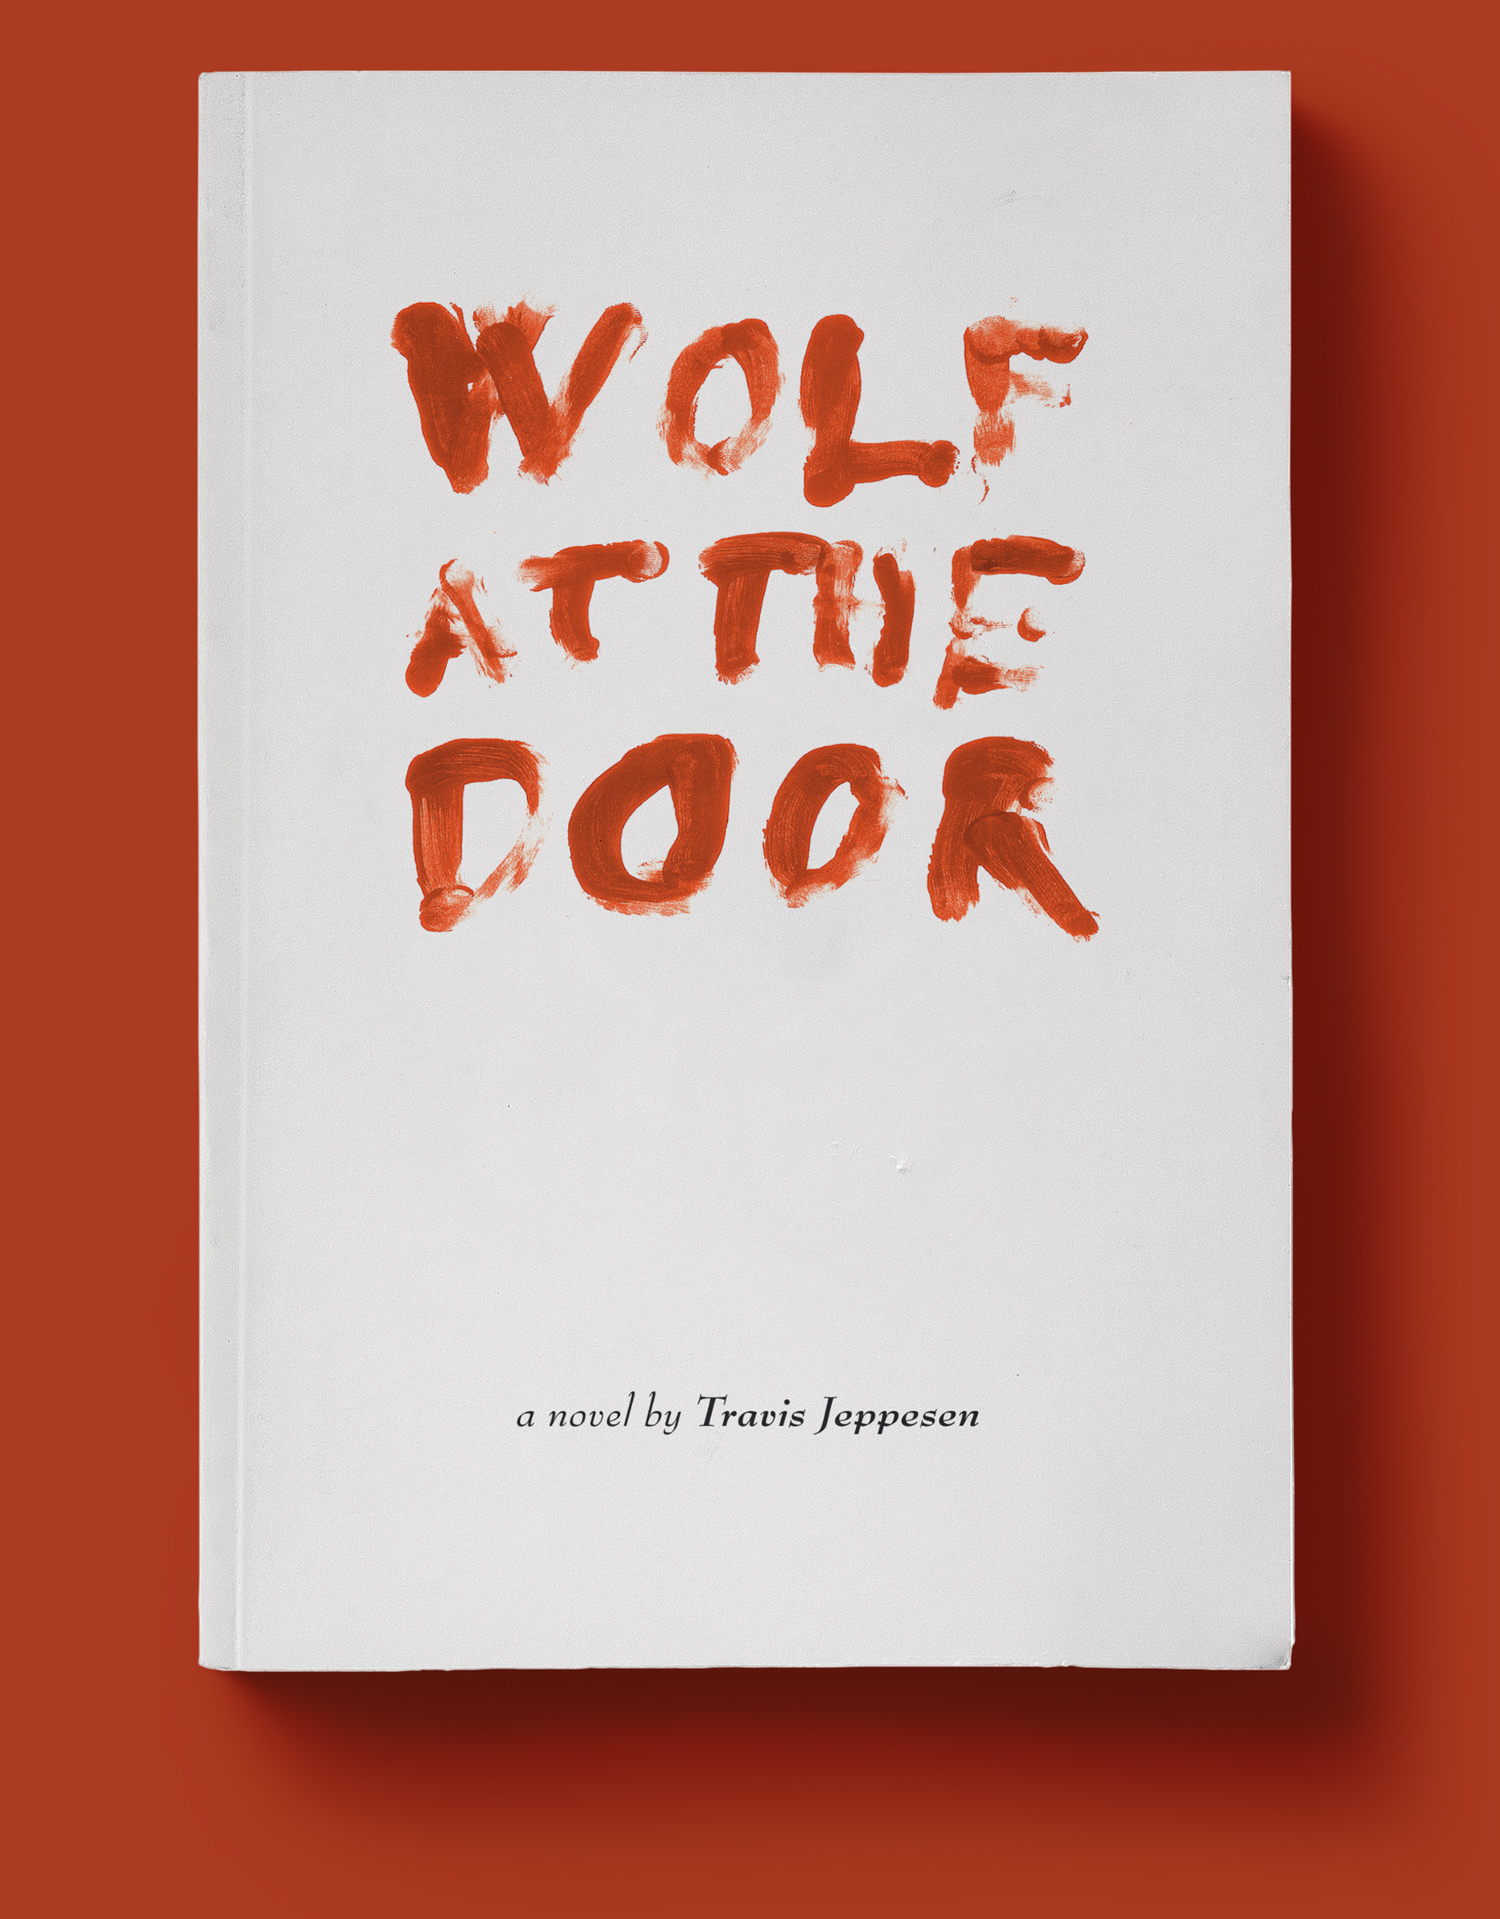 Mario Dzurila Book Cover Design Travis Jeppesen Wolf At The Door